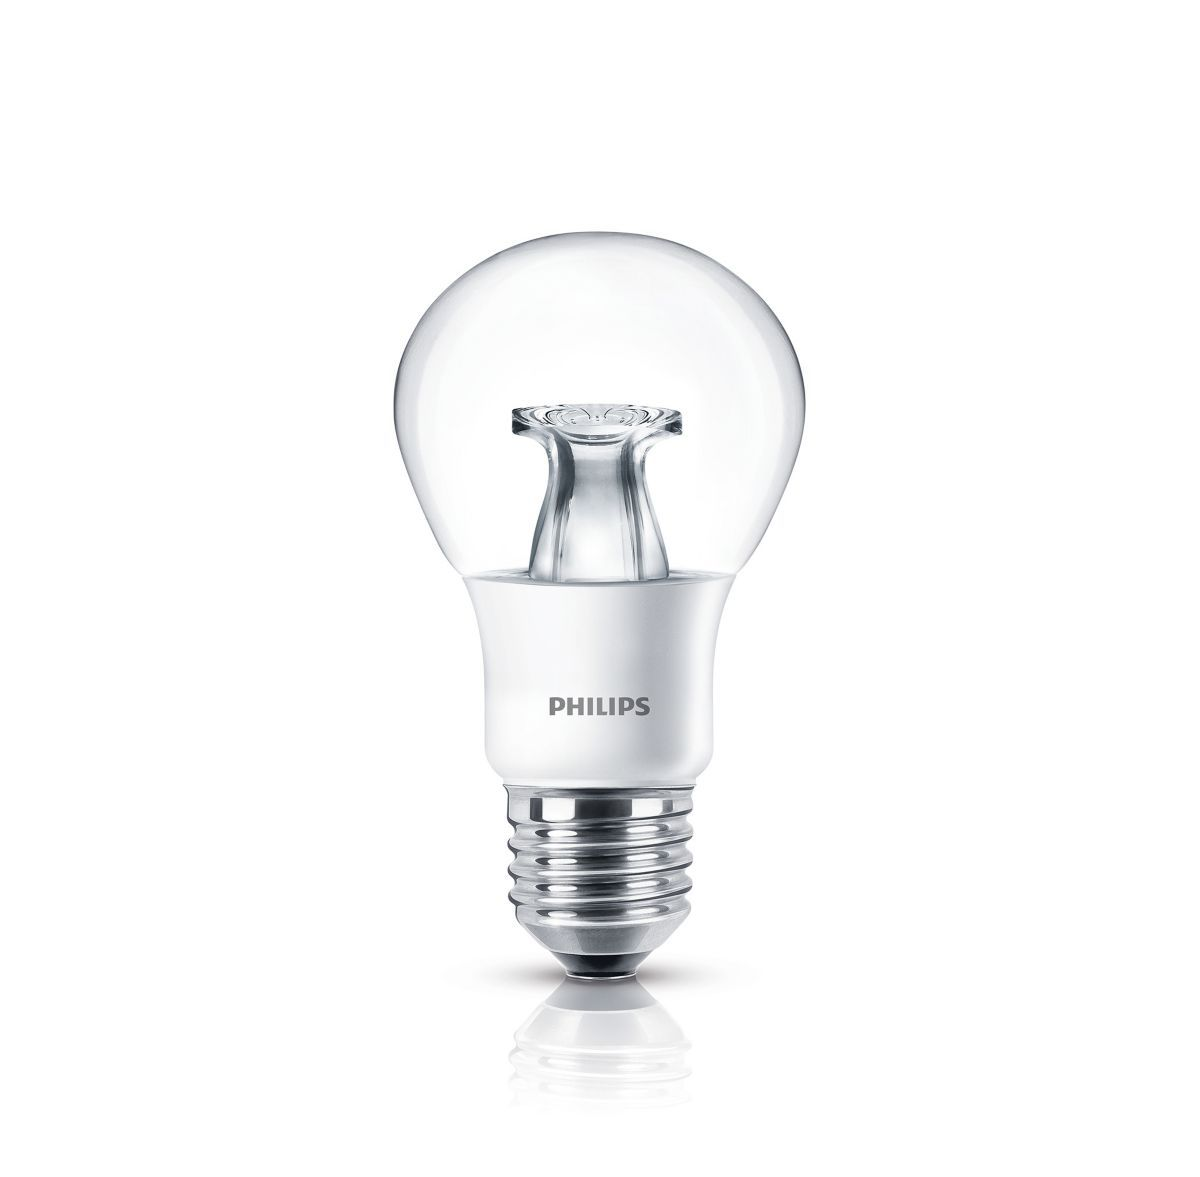 Catalogo Lamparas Philips Master Ledestándar Led Bombillas Philips Lighting